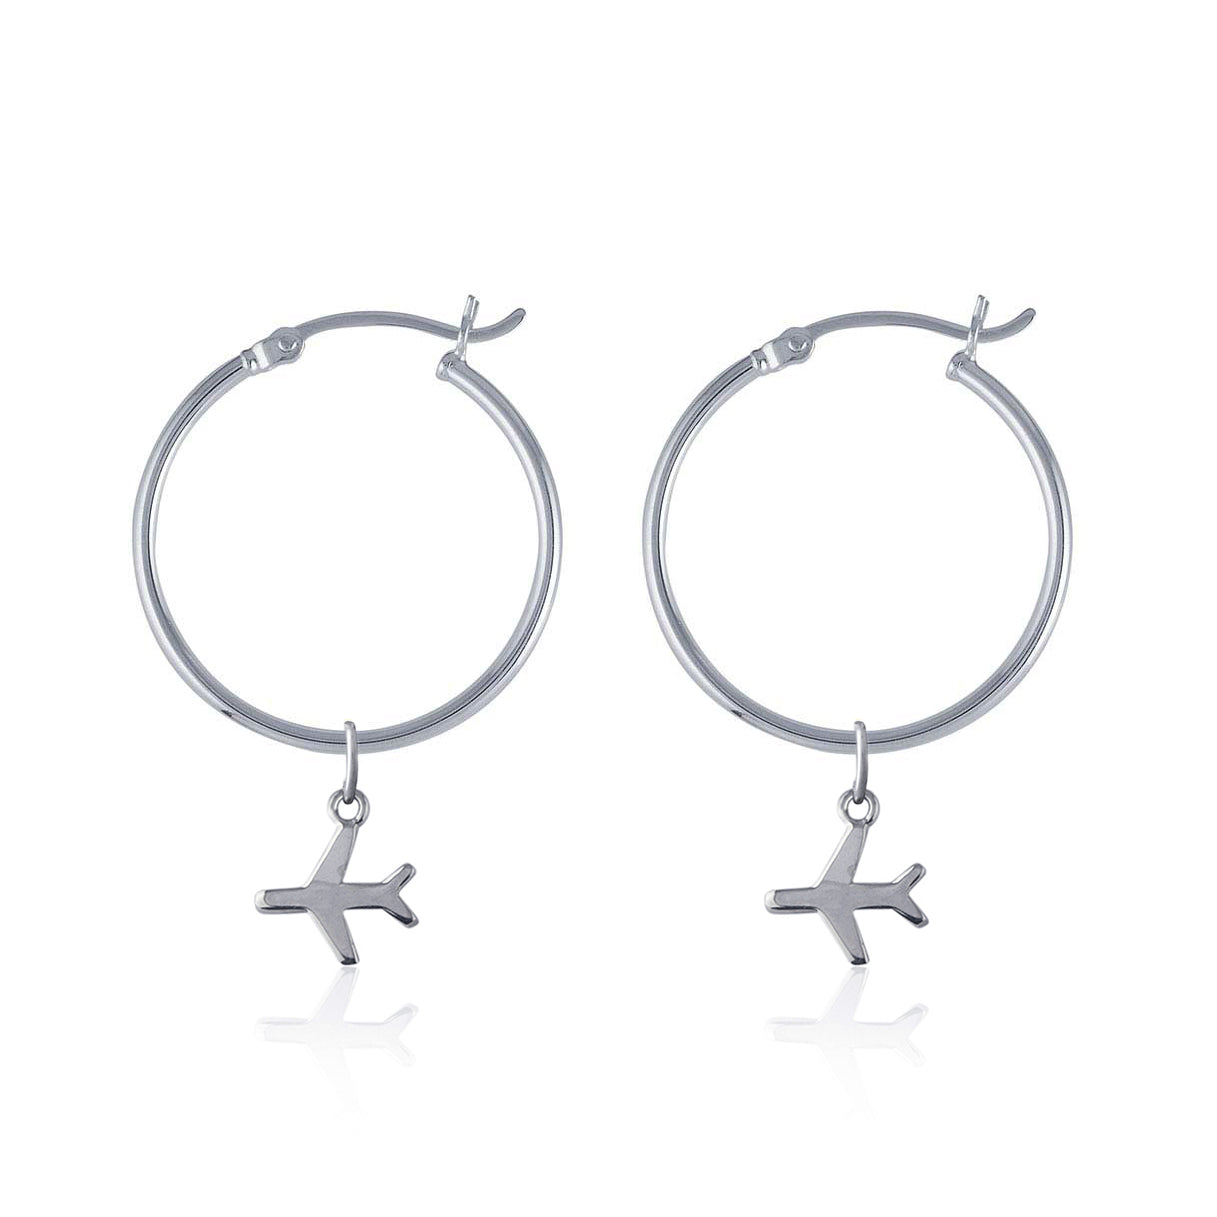 La Luna Rose Recycled Sterling Silver Tube Hoops with Plane Travel Charms